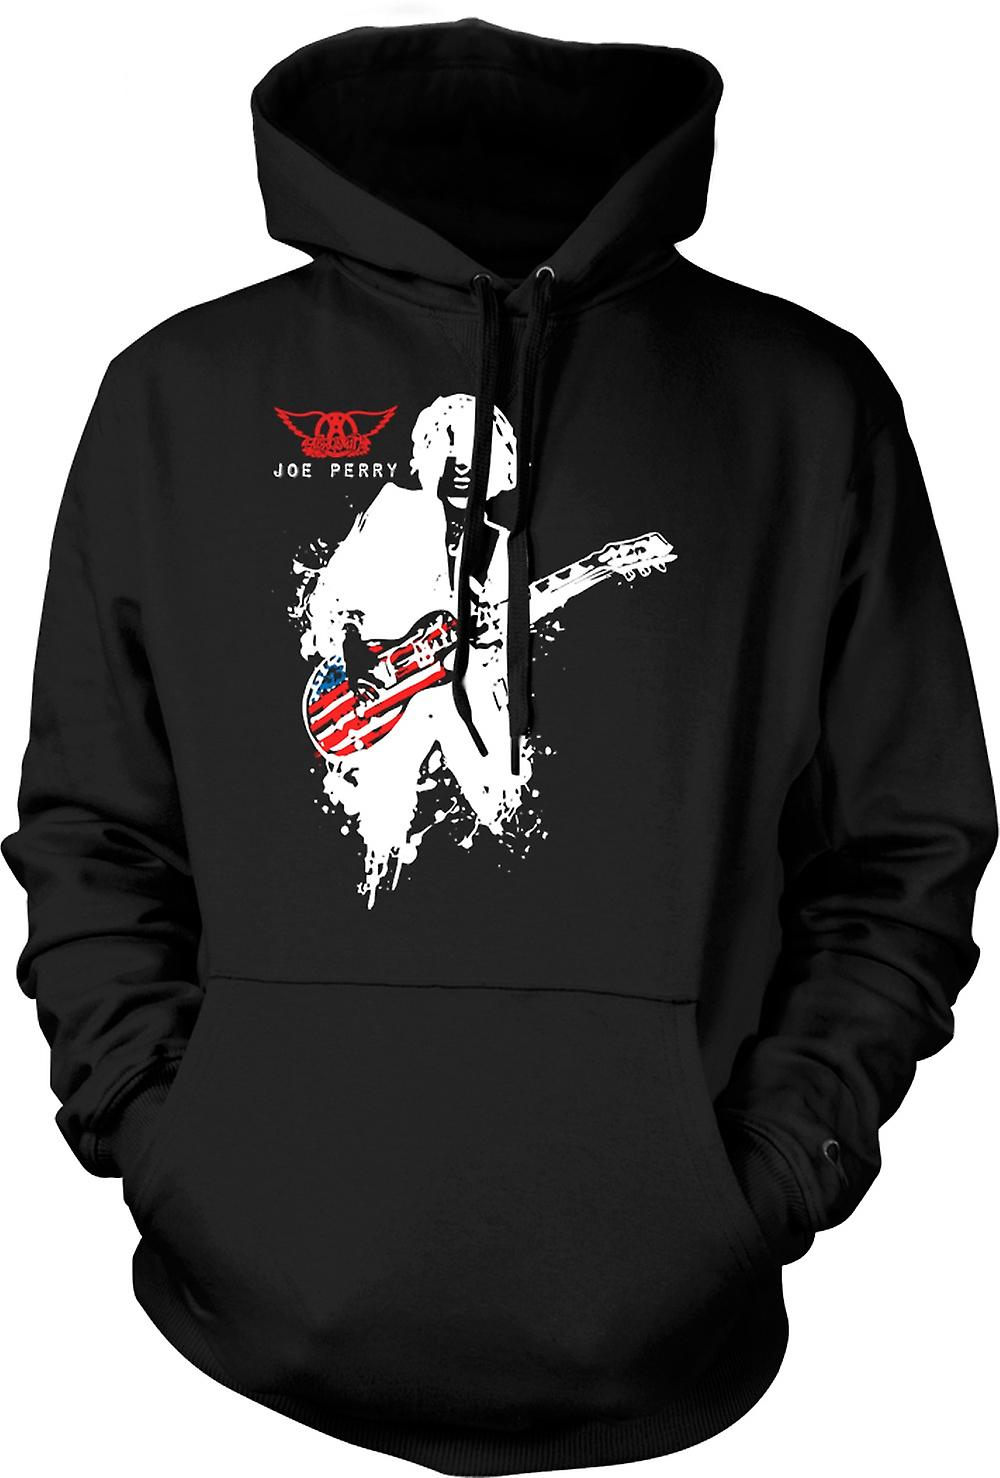 Kinder Hoodie - Aerosmith - Joe Perry - Gitarre